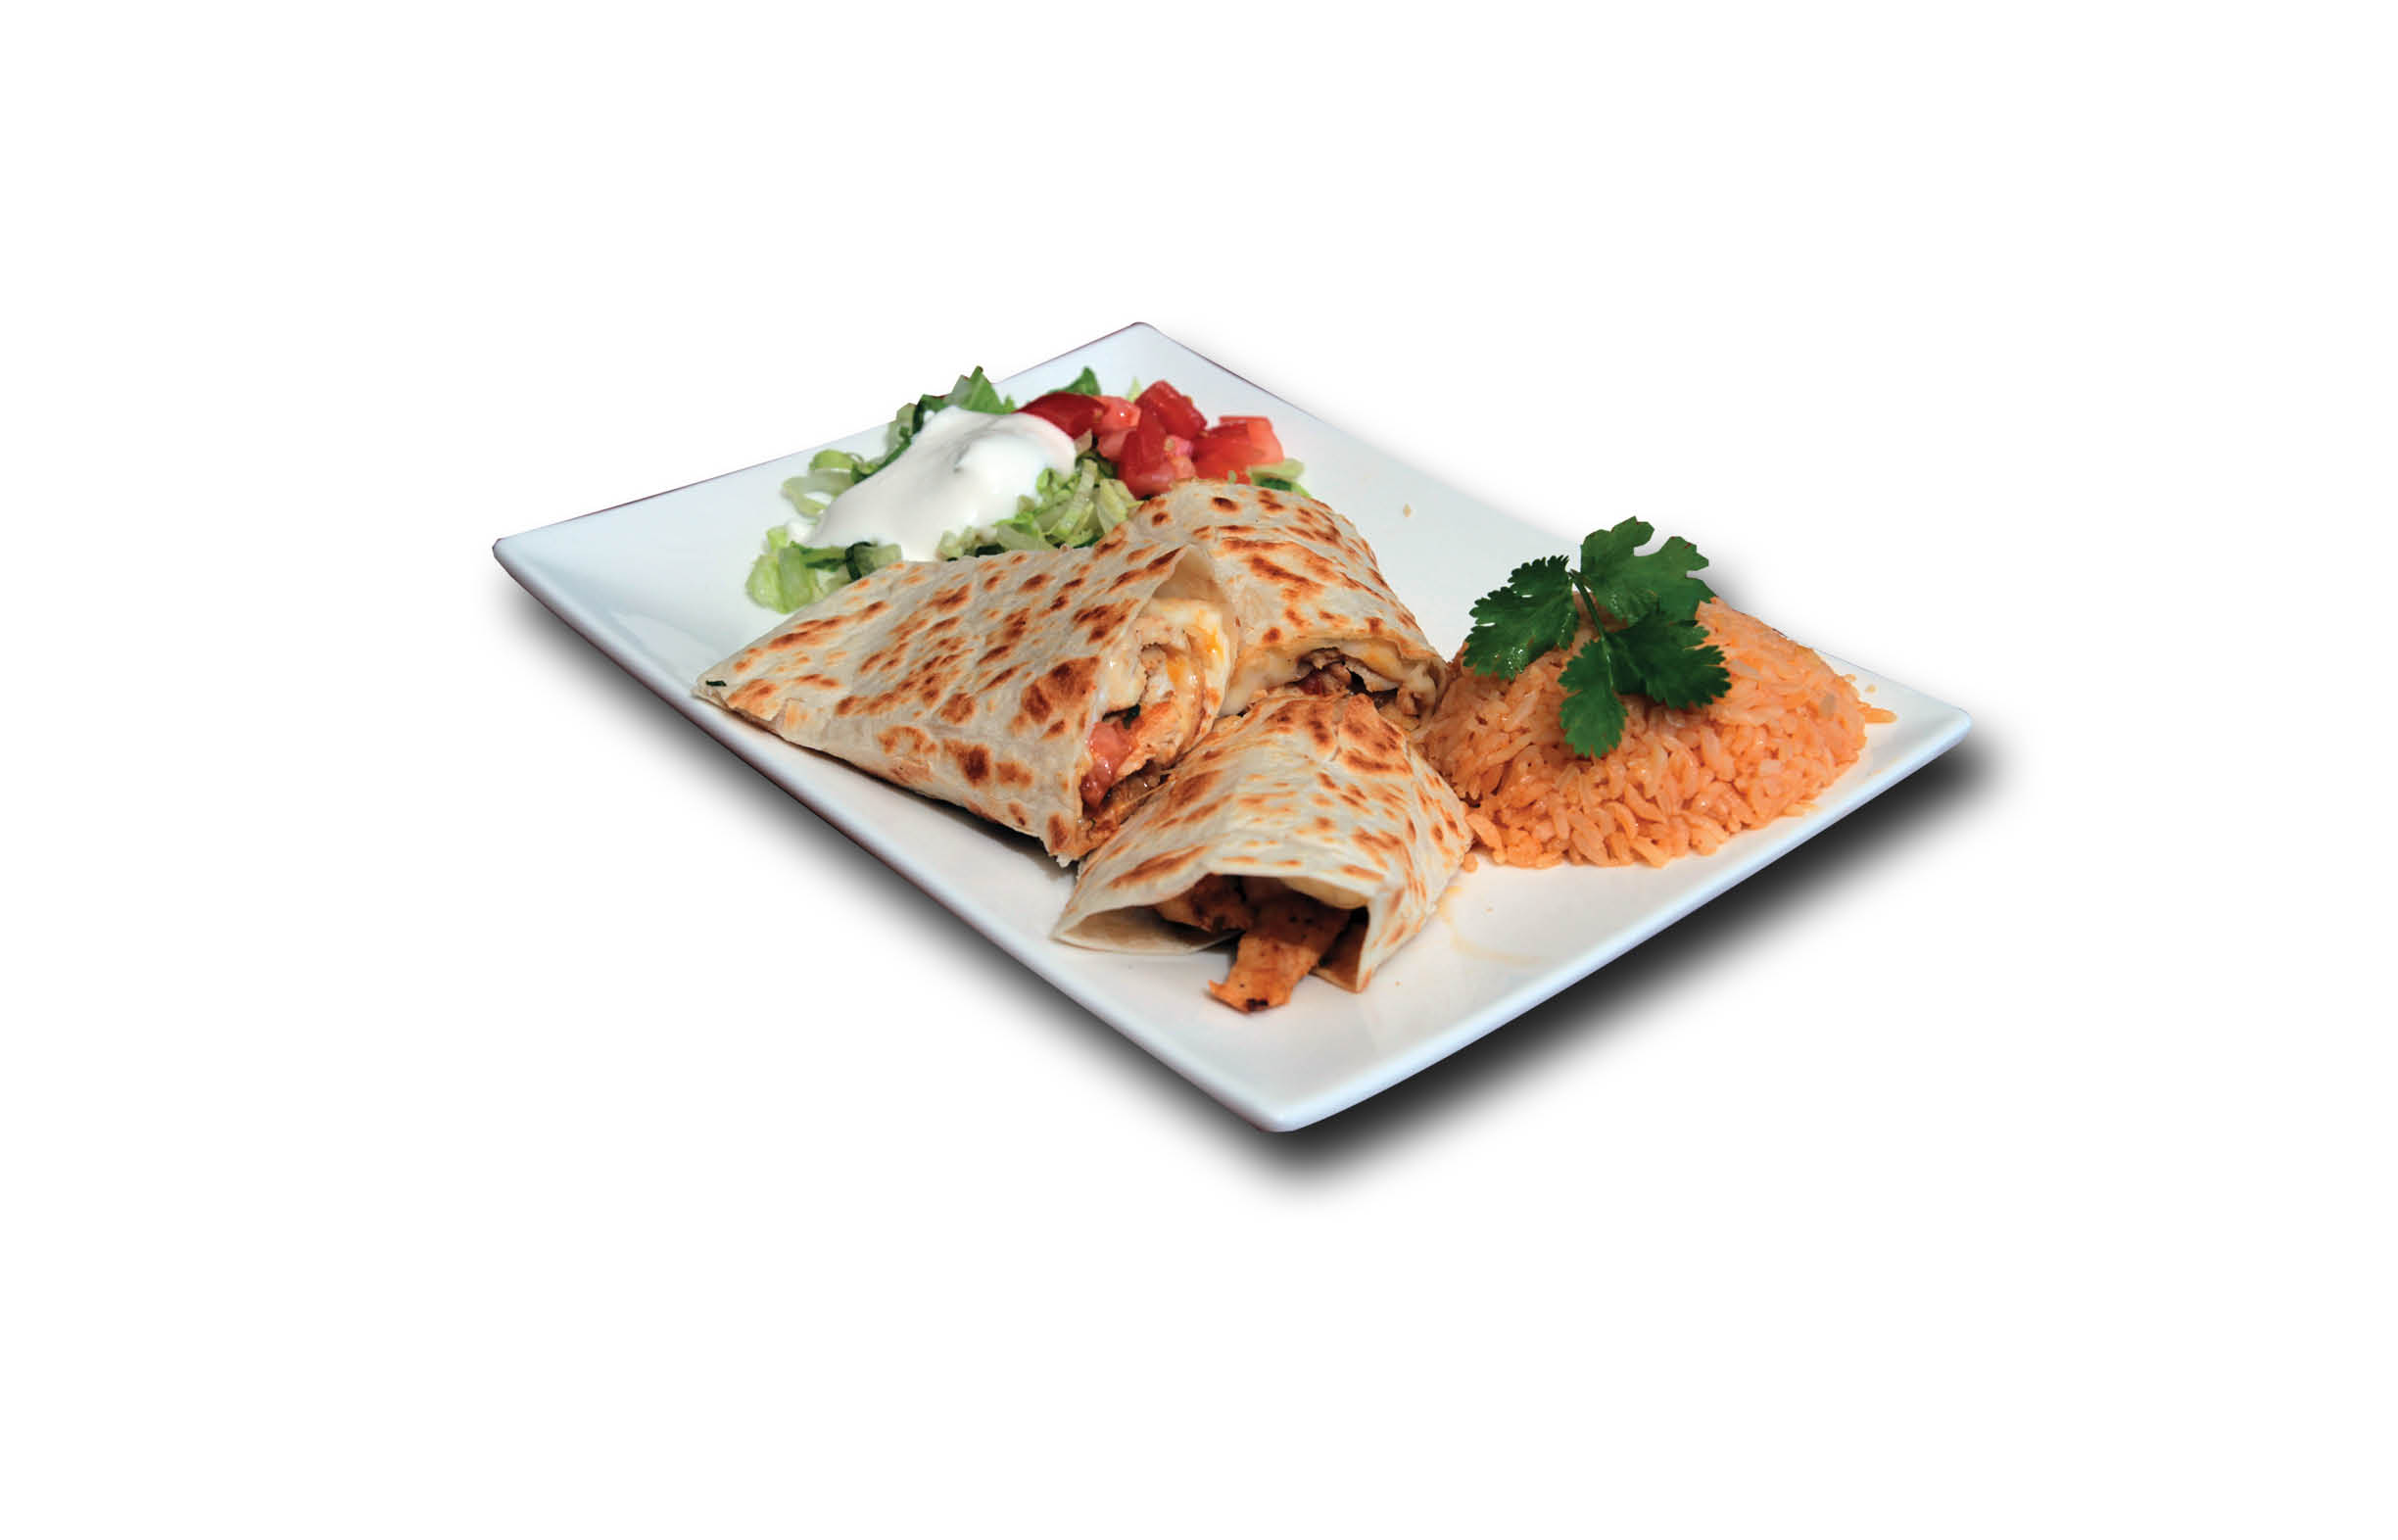 Rio Grande Fresh Mexican Grill, Noblesville, IN, Authentic Mexican Food